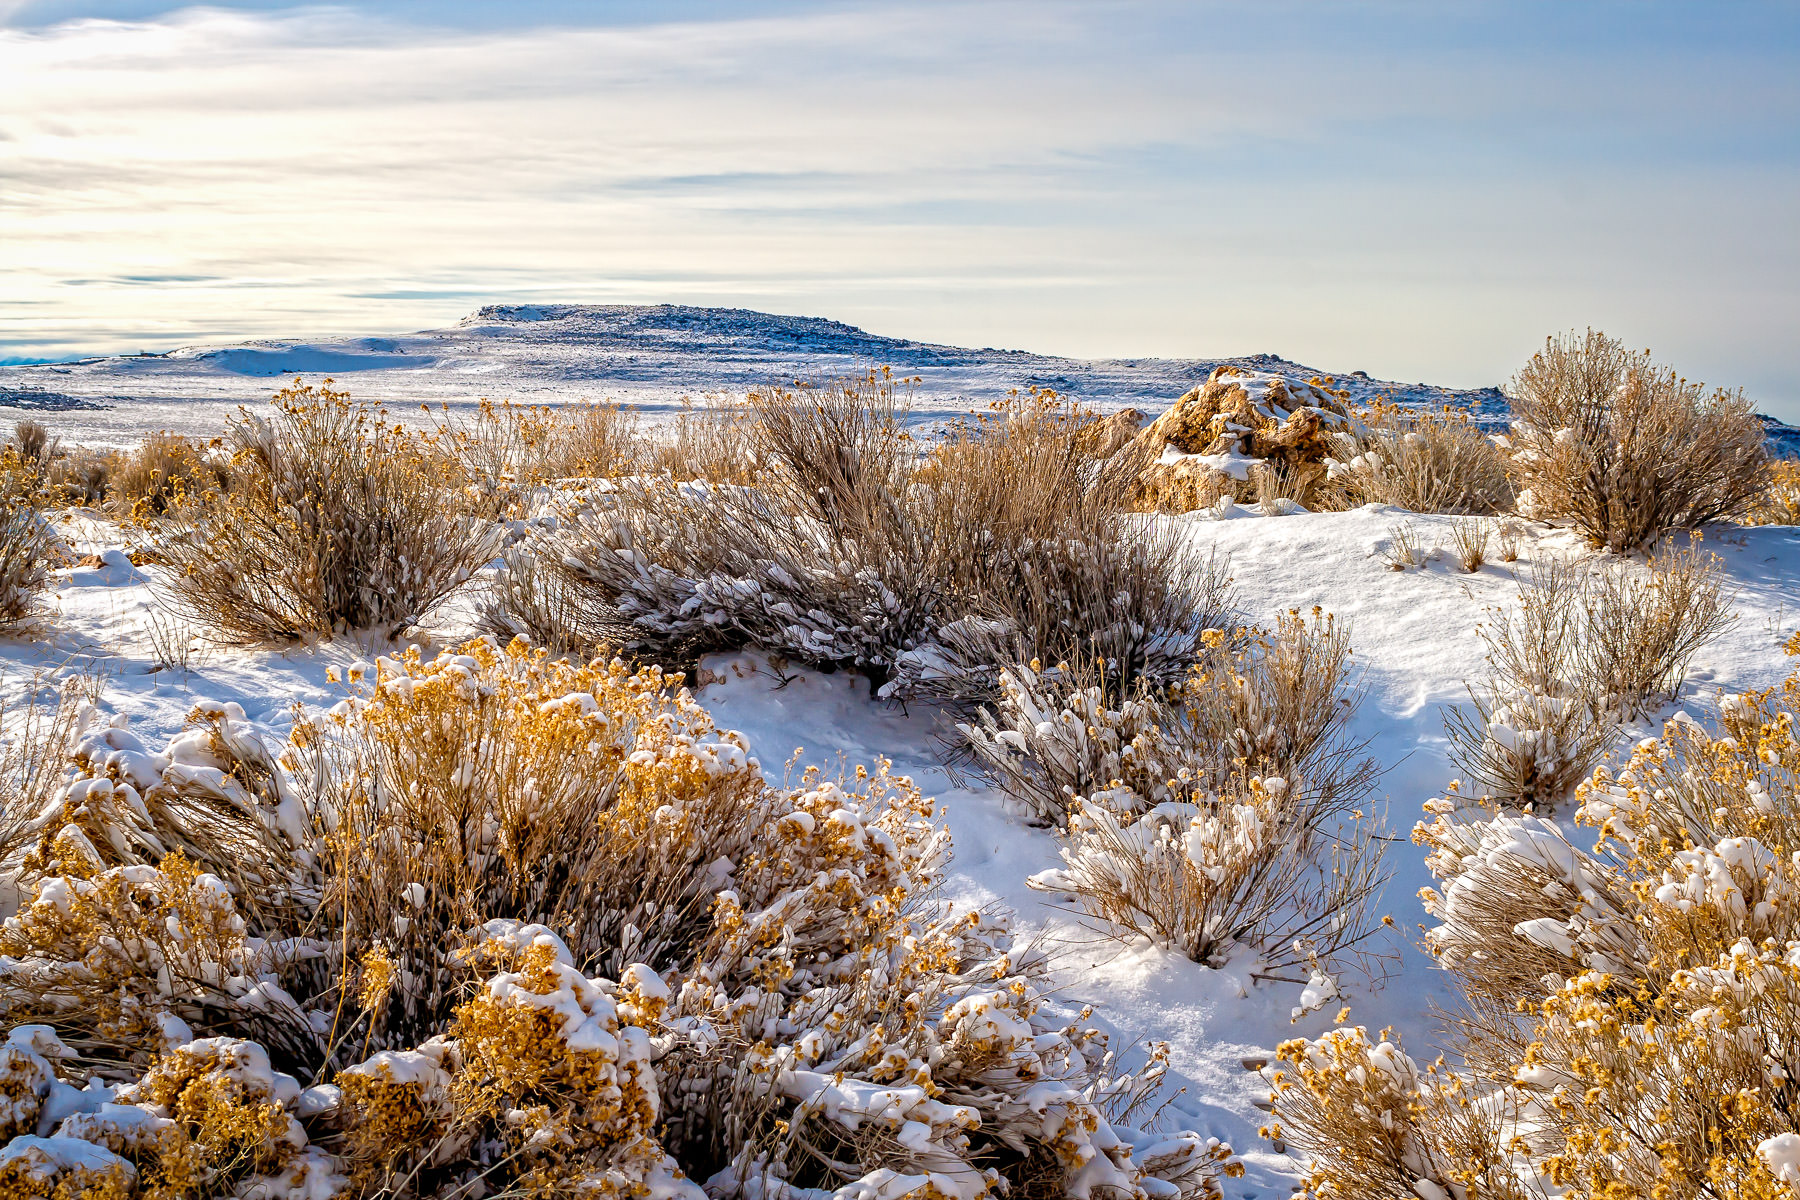 Snow covers the brushy, rocky landscape of the Great Salt Lake's Antelope Island in Utah.